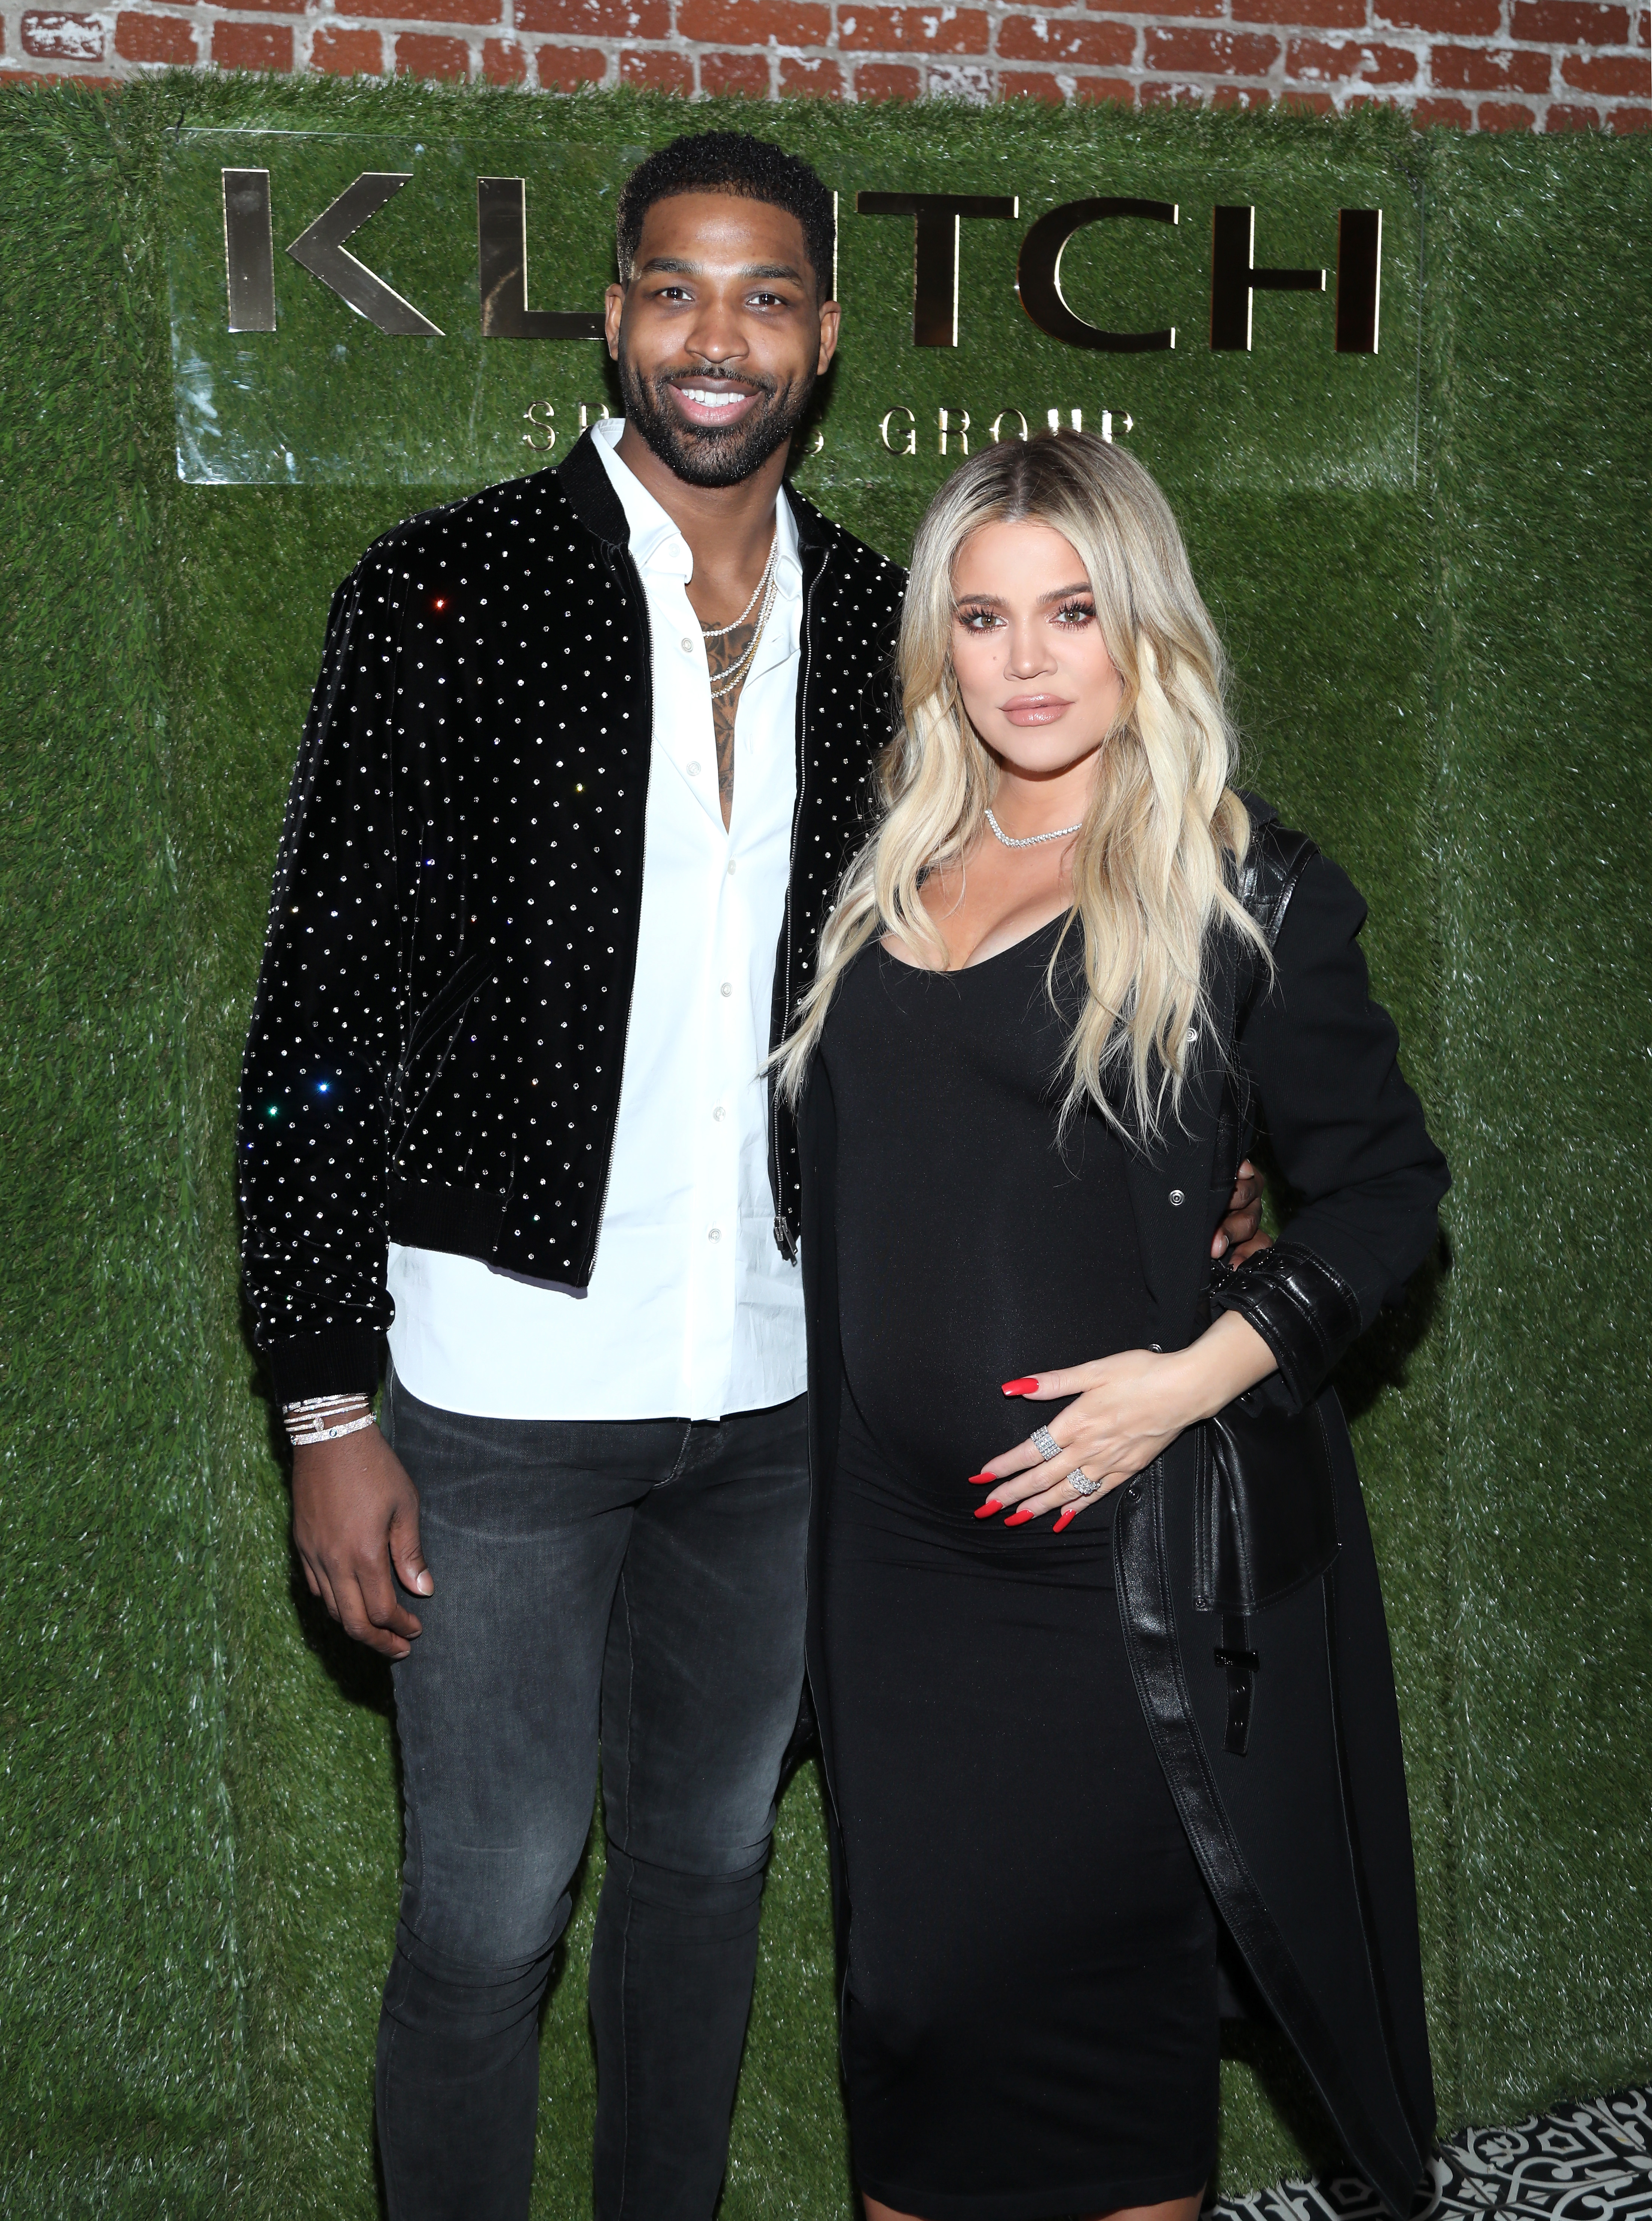 """Khloé Kardashian and Tristan Thompson attend the Klutch Sports Group """"The Game Is Every-Thing"""" Dinner presented by Remy Martin"""